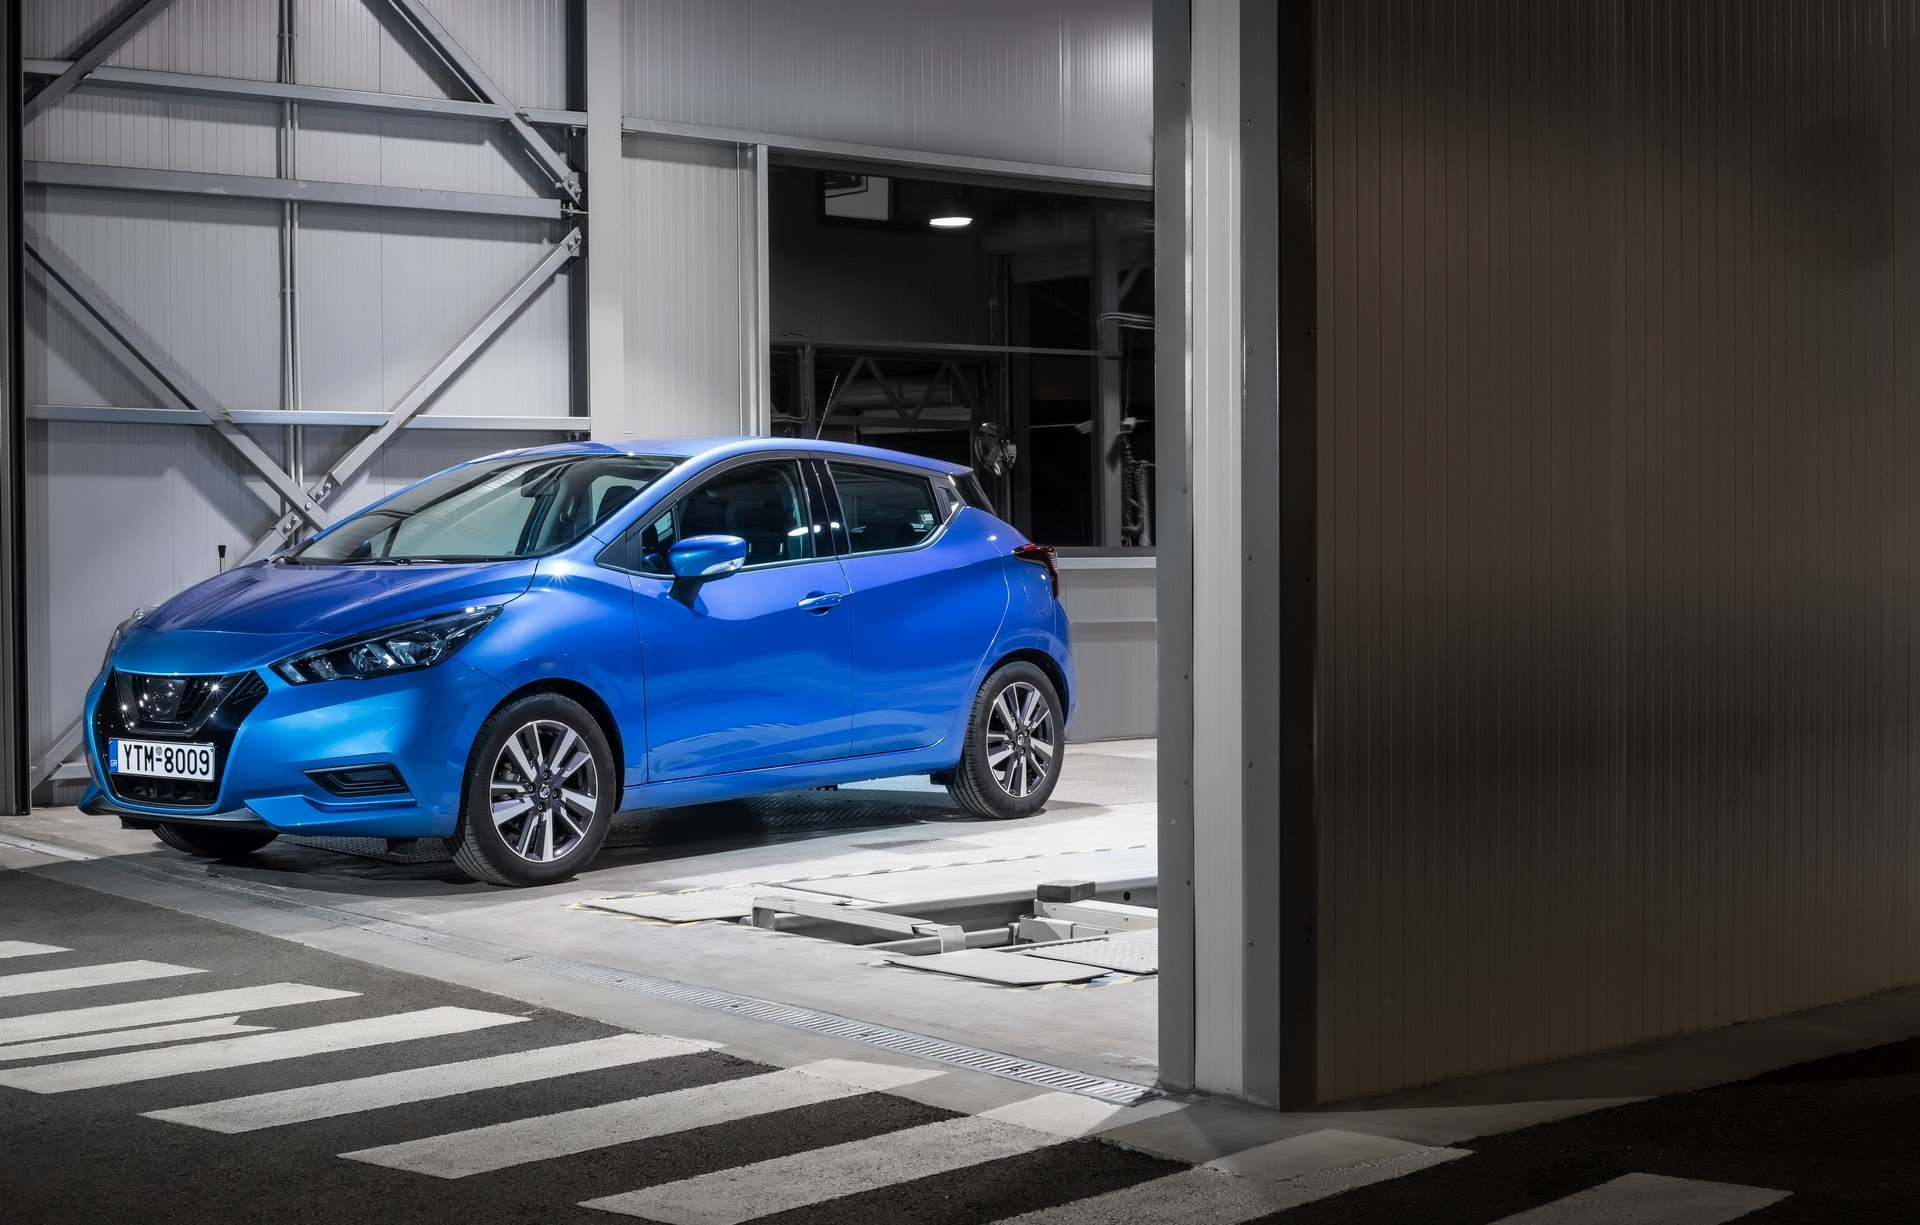 Nissan Micra 2019 Greek (8)